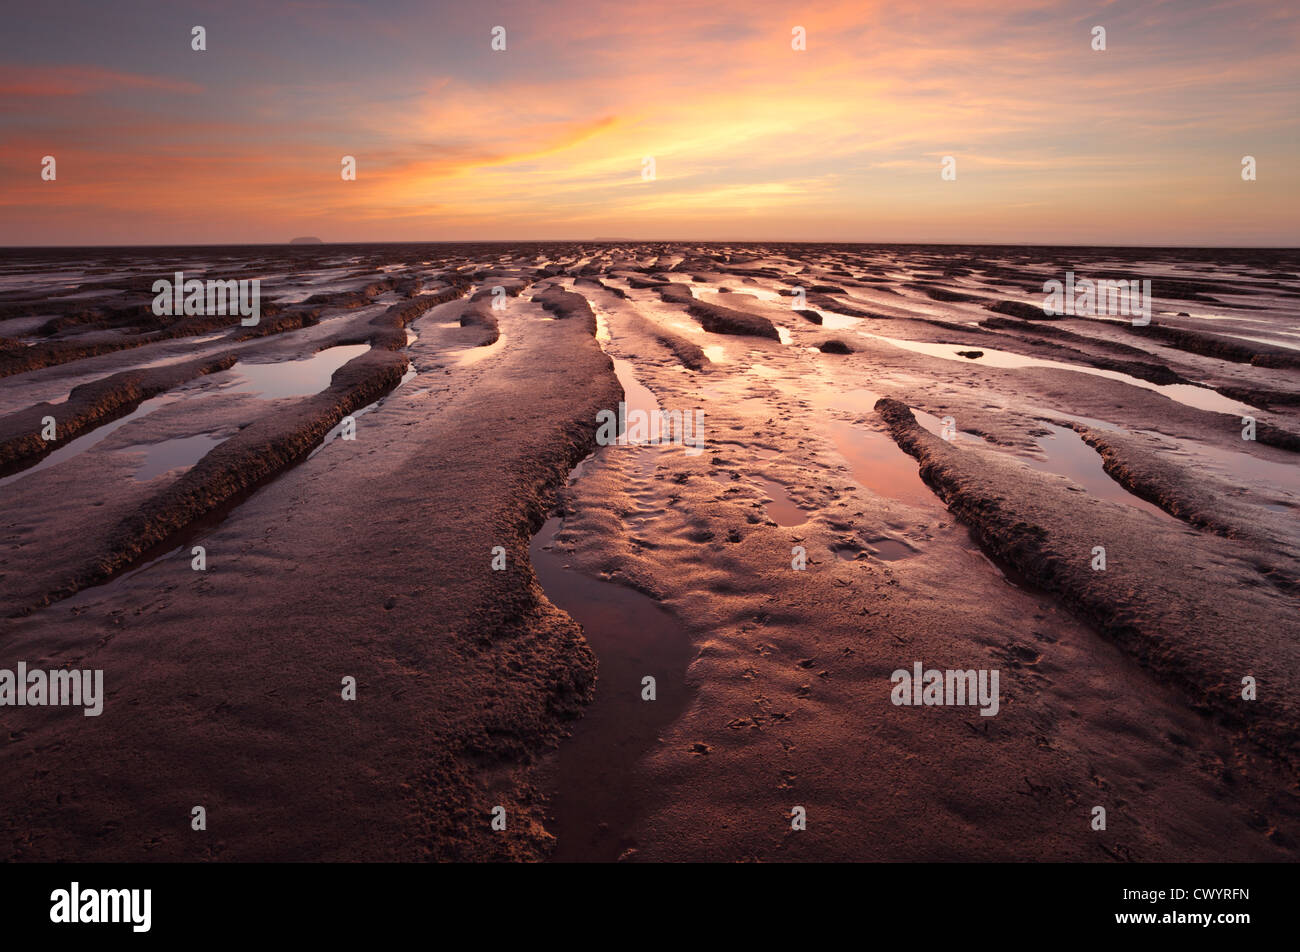 Mudflats at Sand Bay near Weston-super-Mare. Somerset. England. UK. - Stock Image